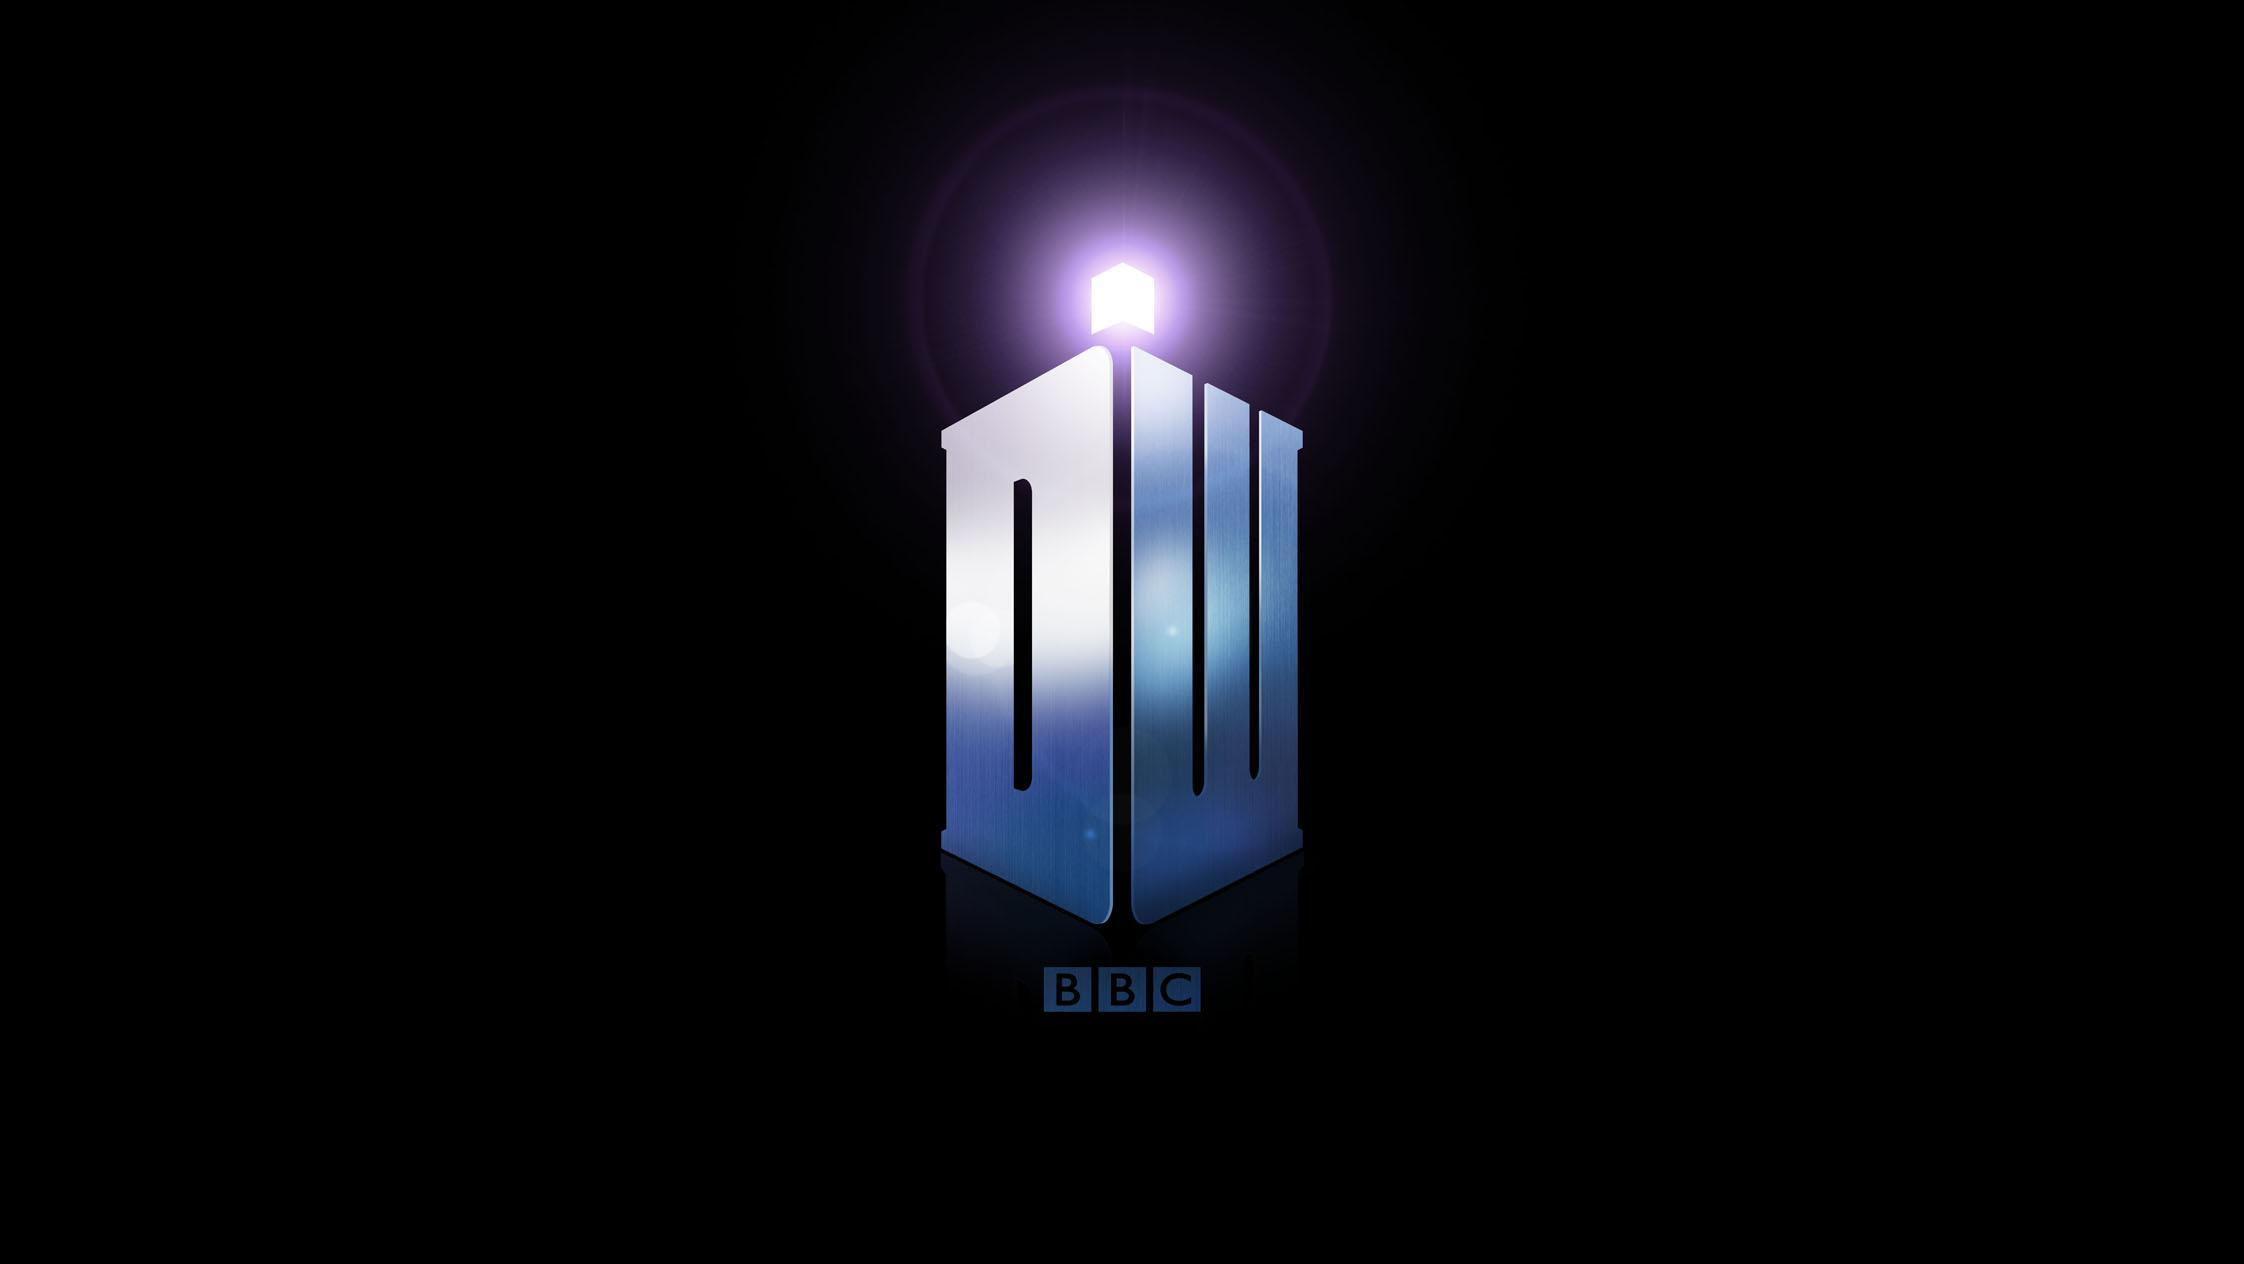 HD doctor who wallpapers downloads / Wallpapers Database